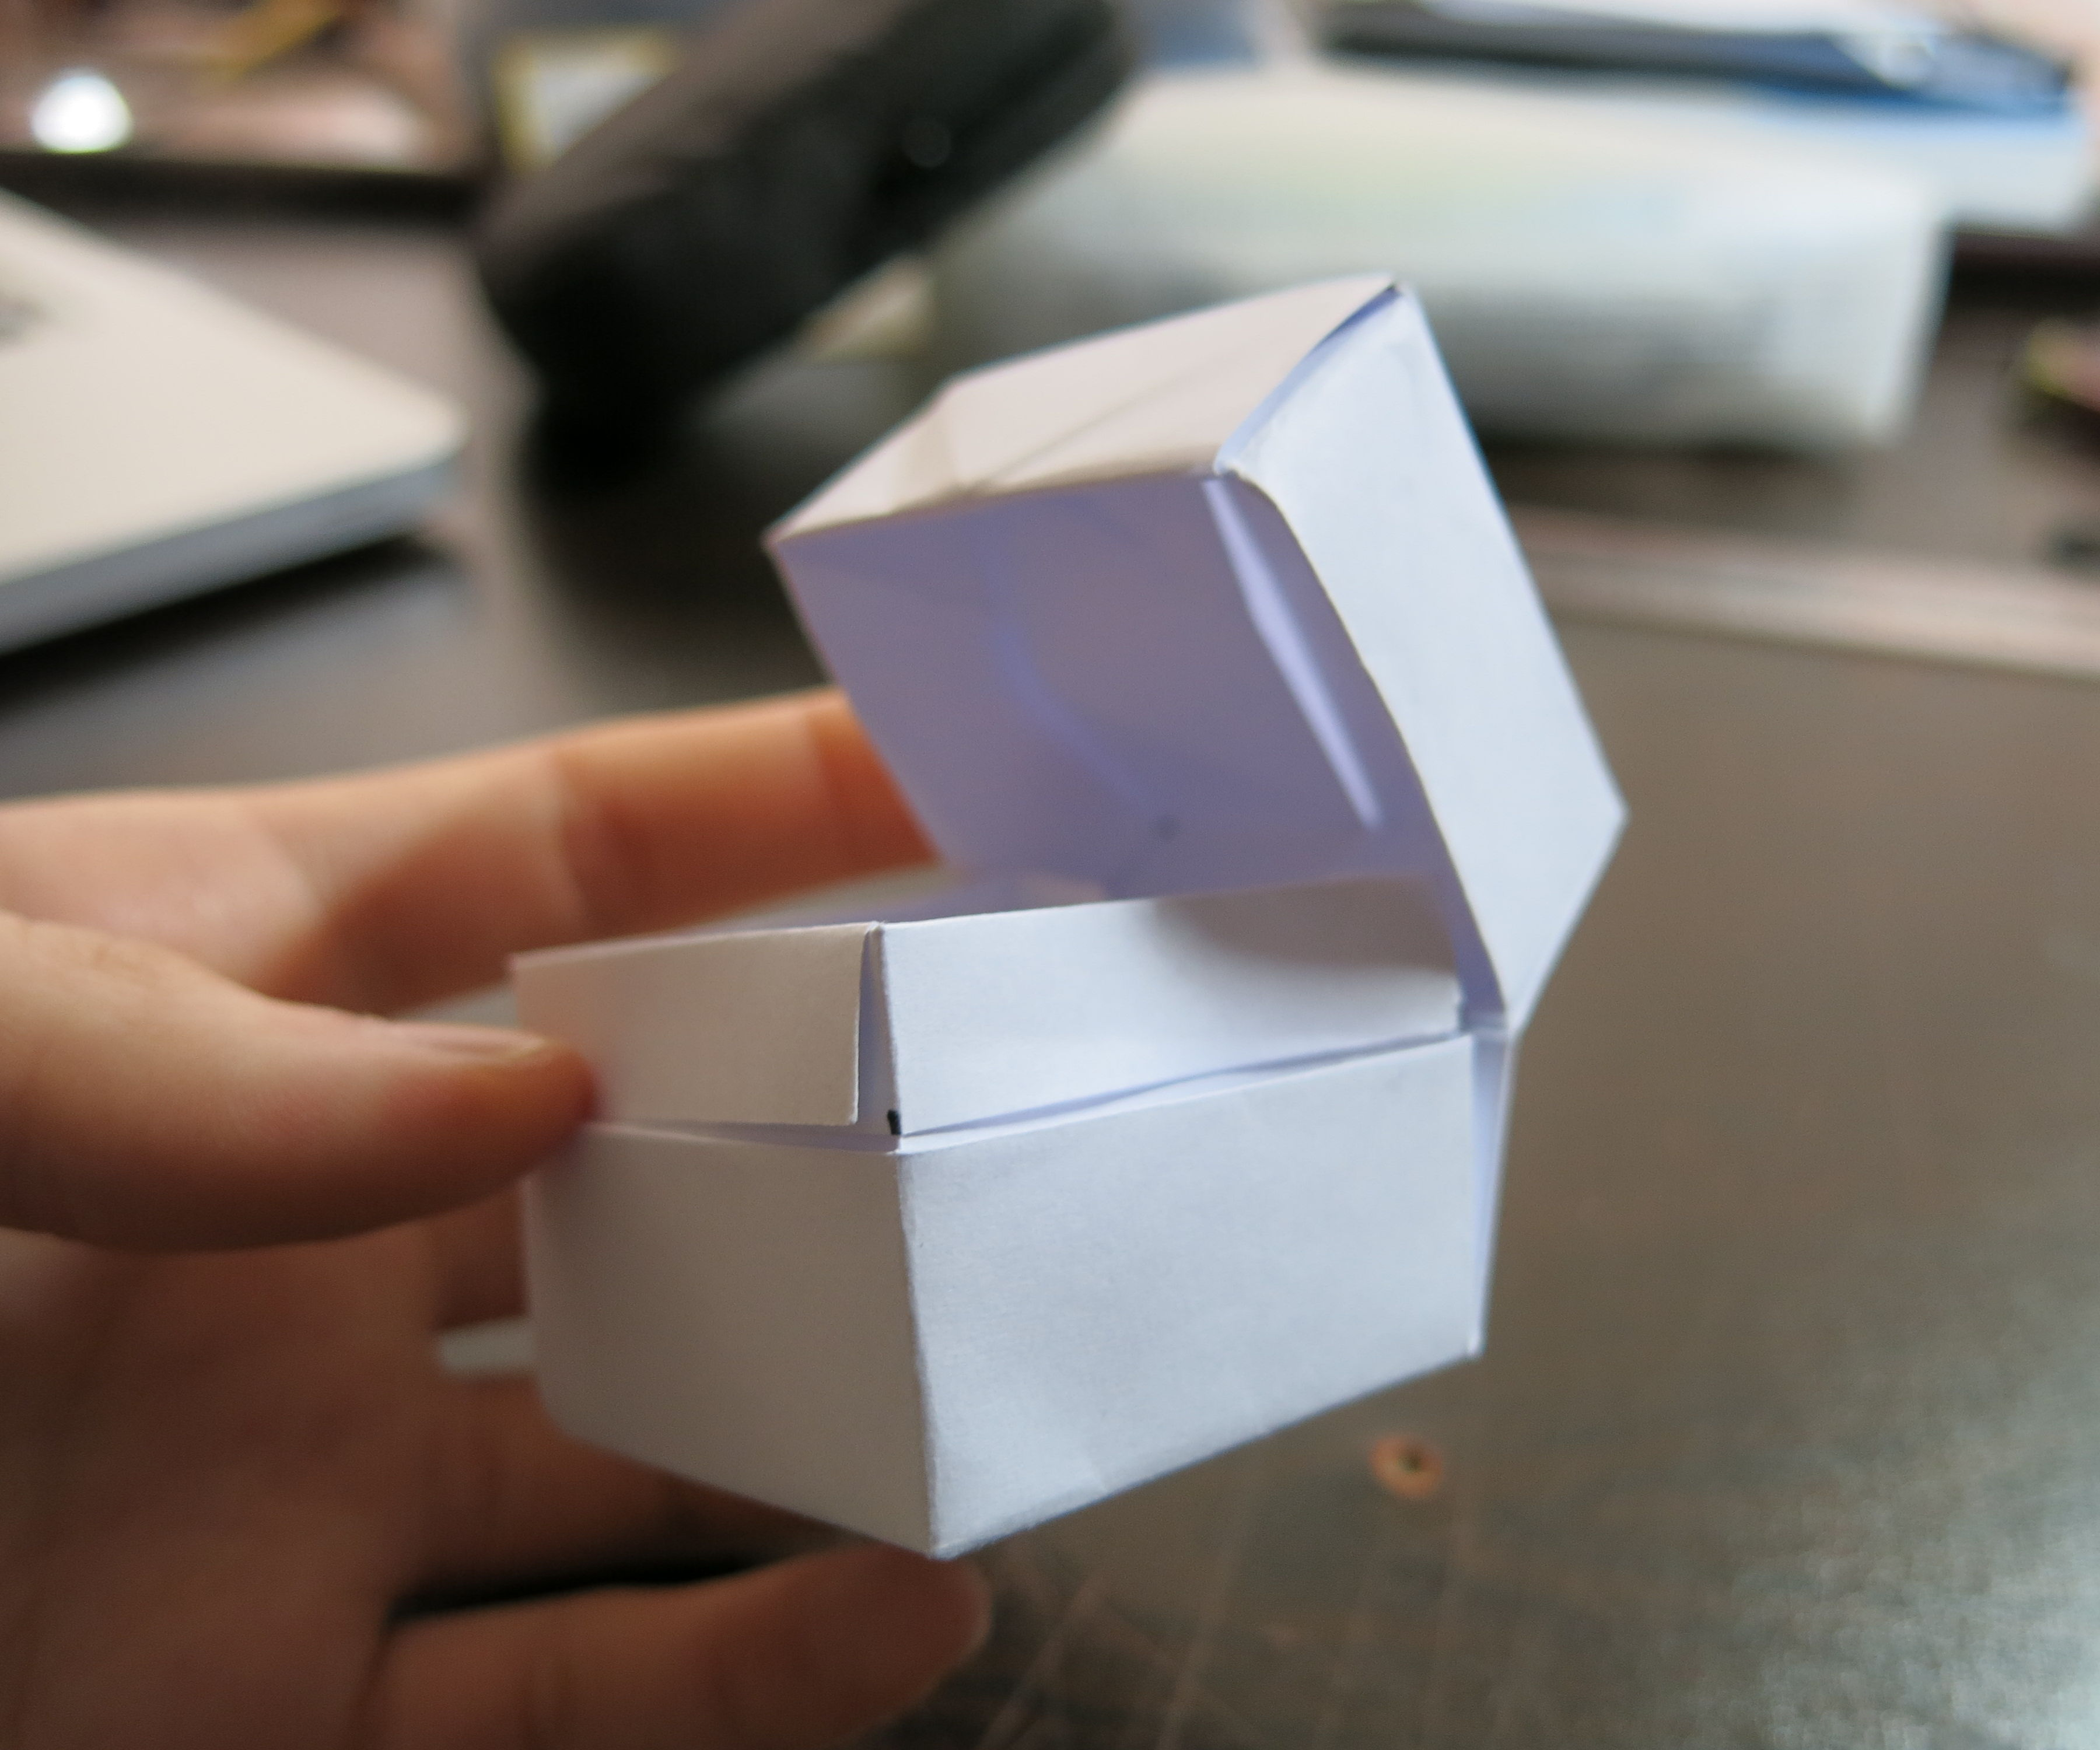 How To Fold a Box With Lid